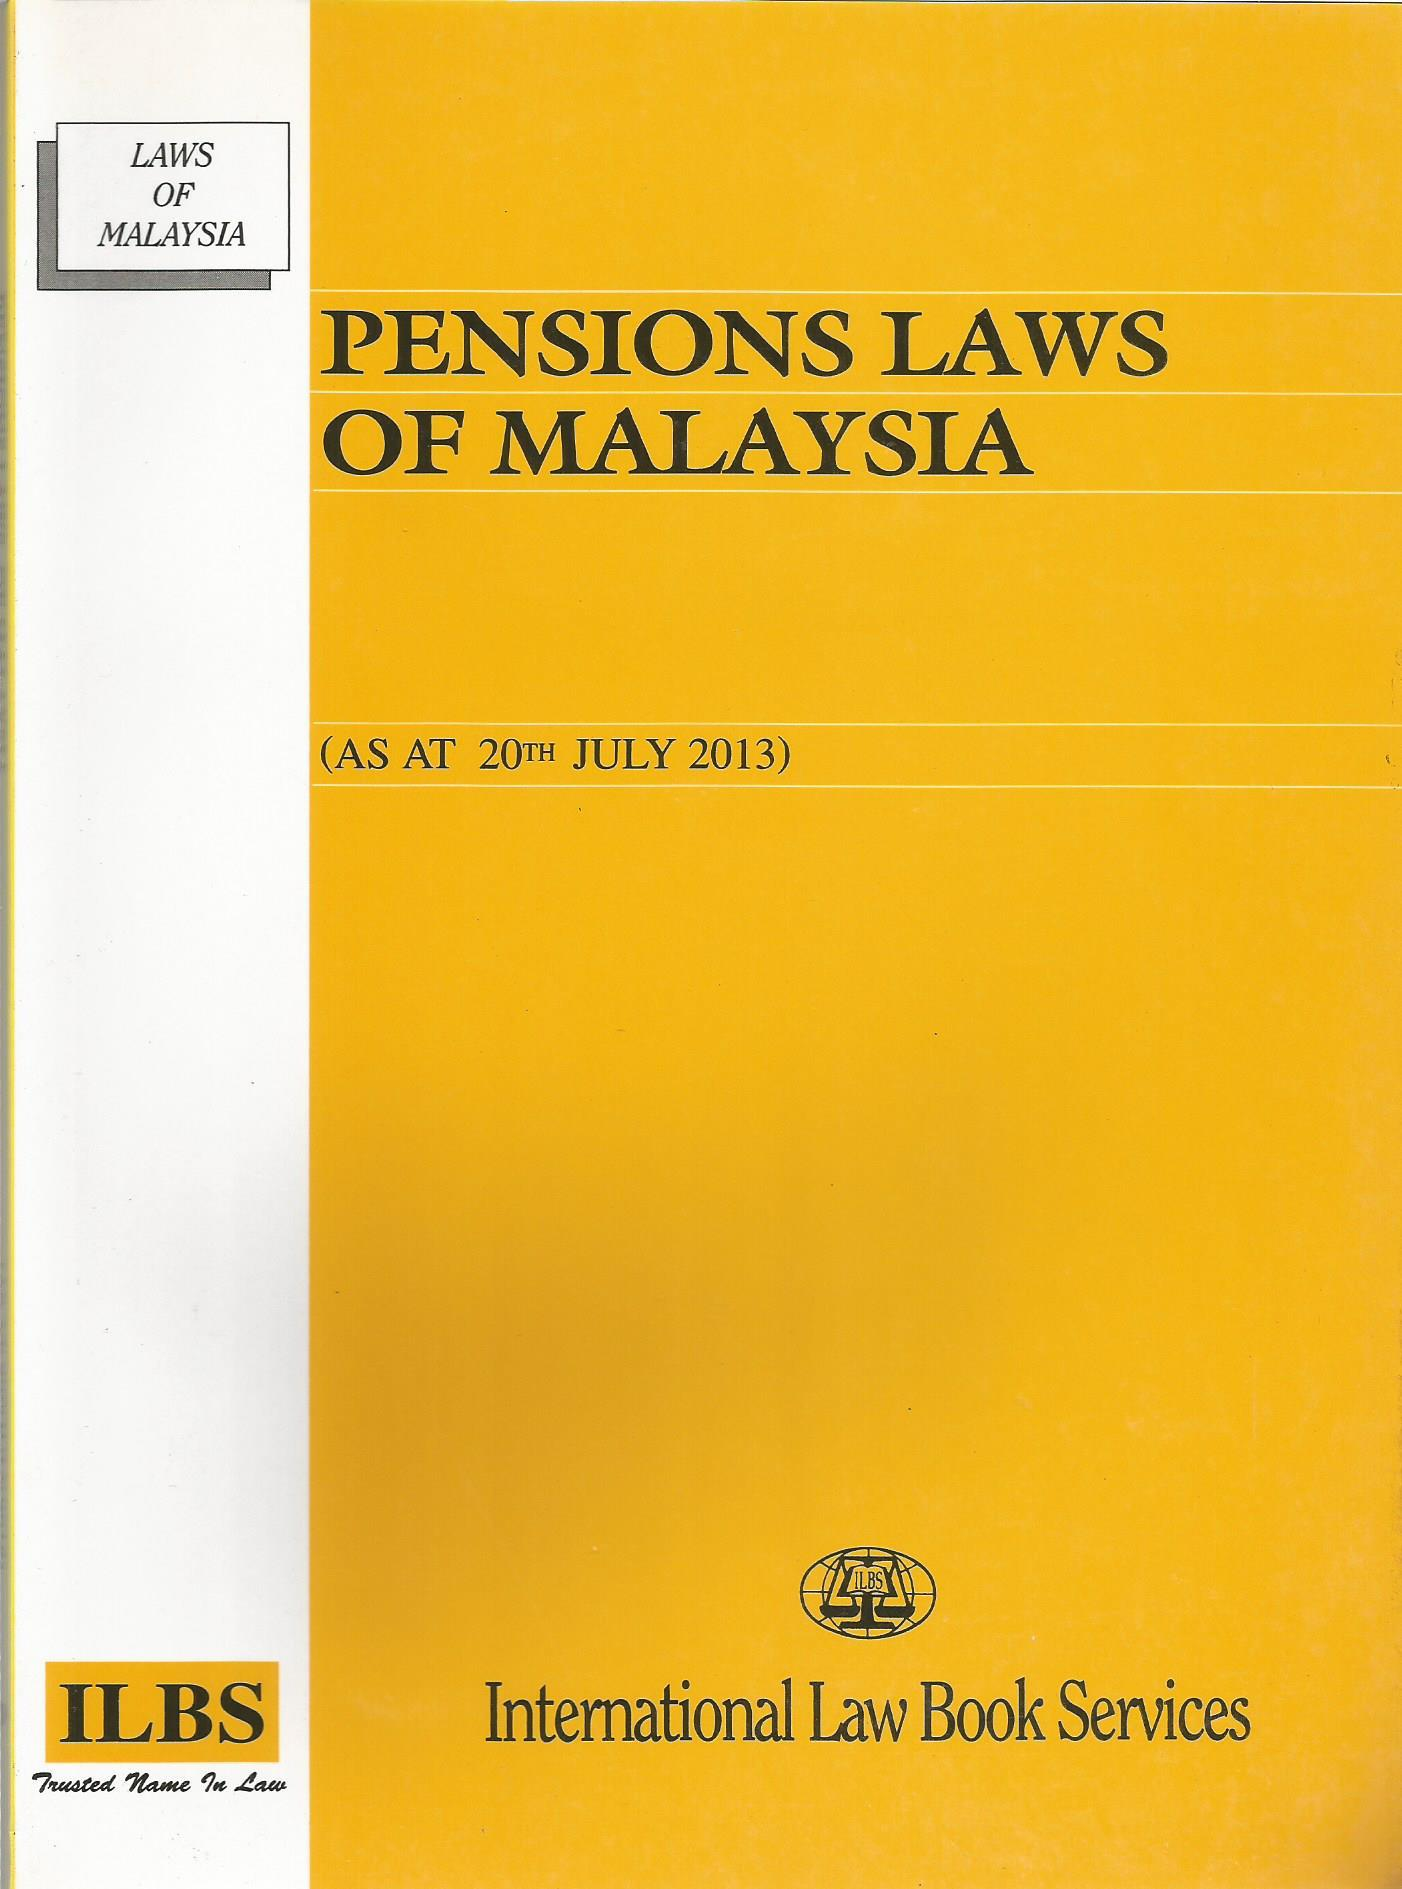 pension laws in malaysia rm22.5 0.30001.jpg